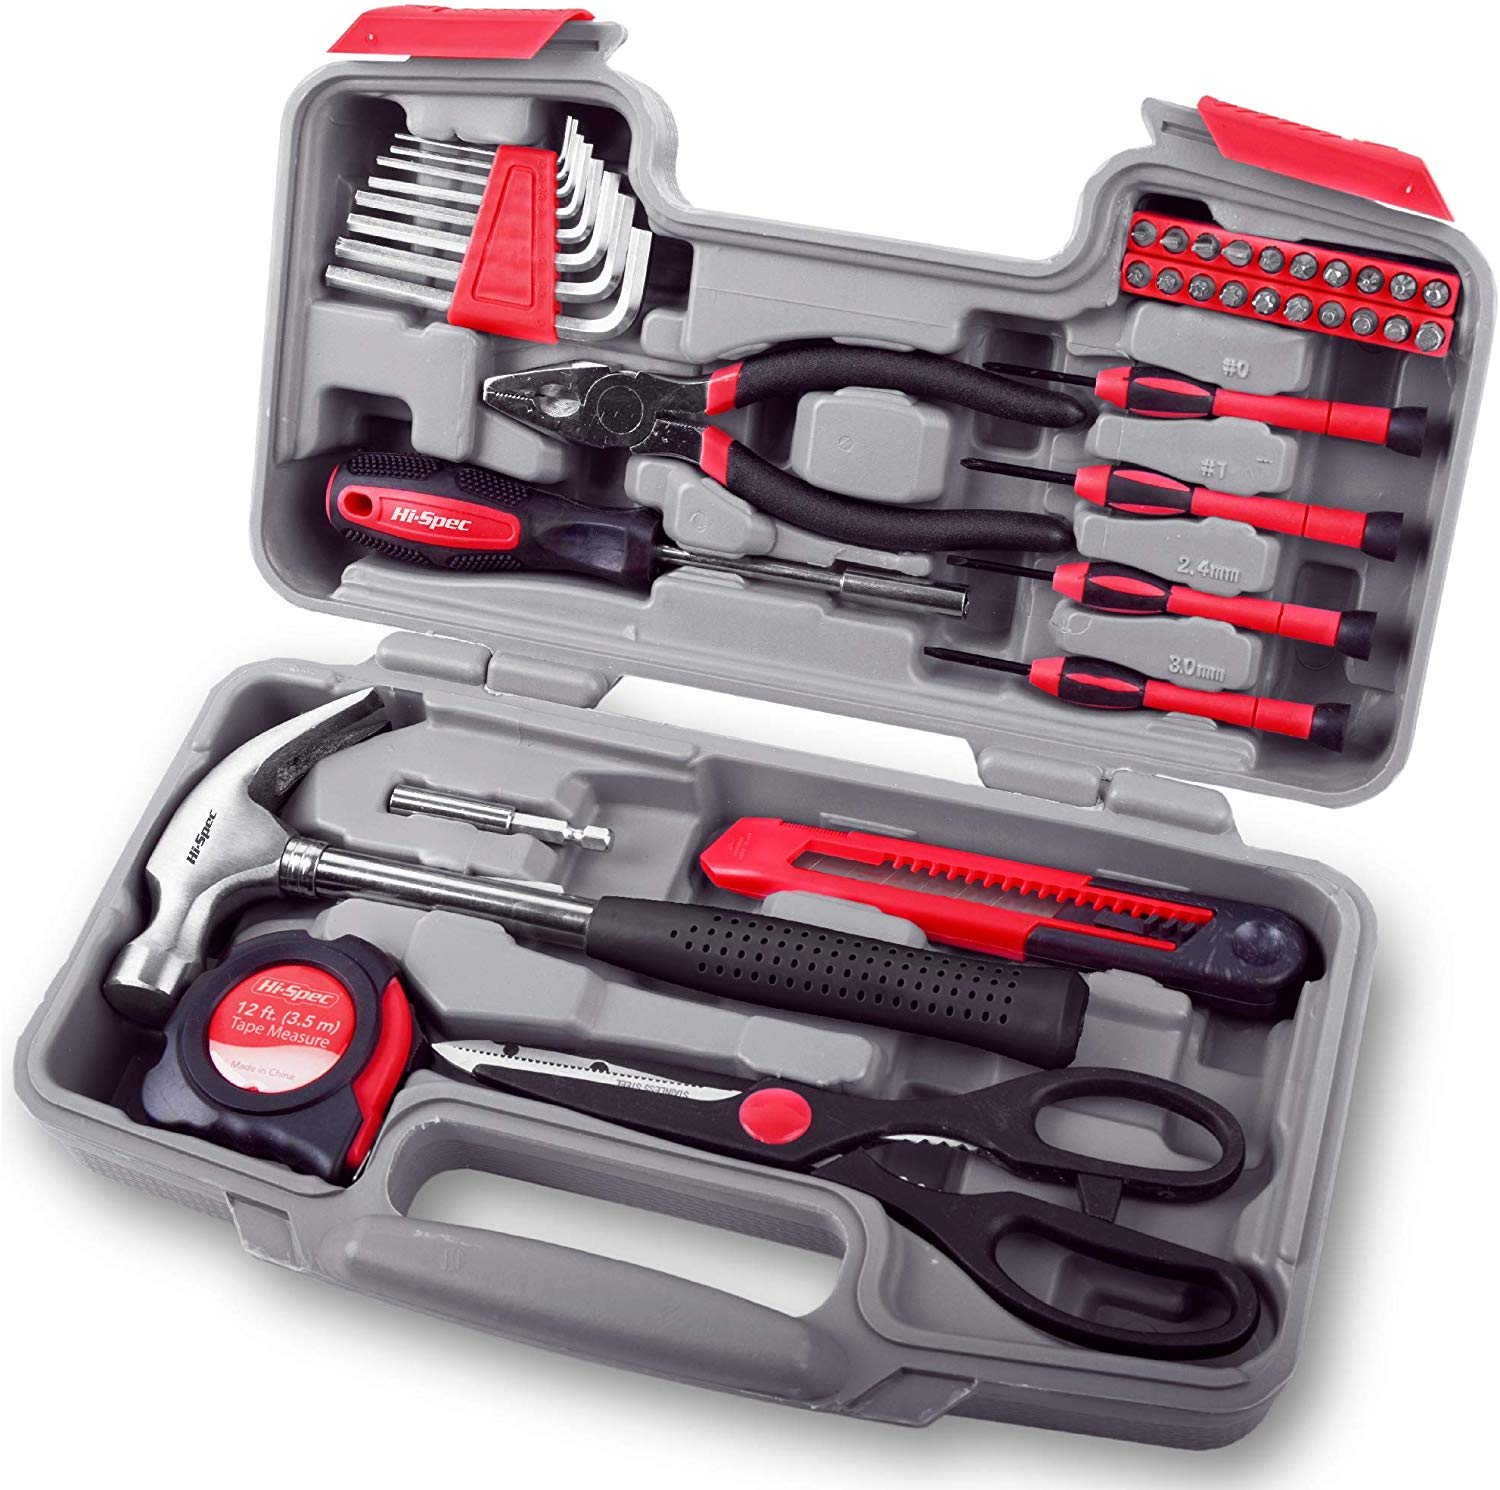 Hi-Spec 39 Piece Home & Office Toolkit Set